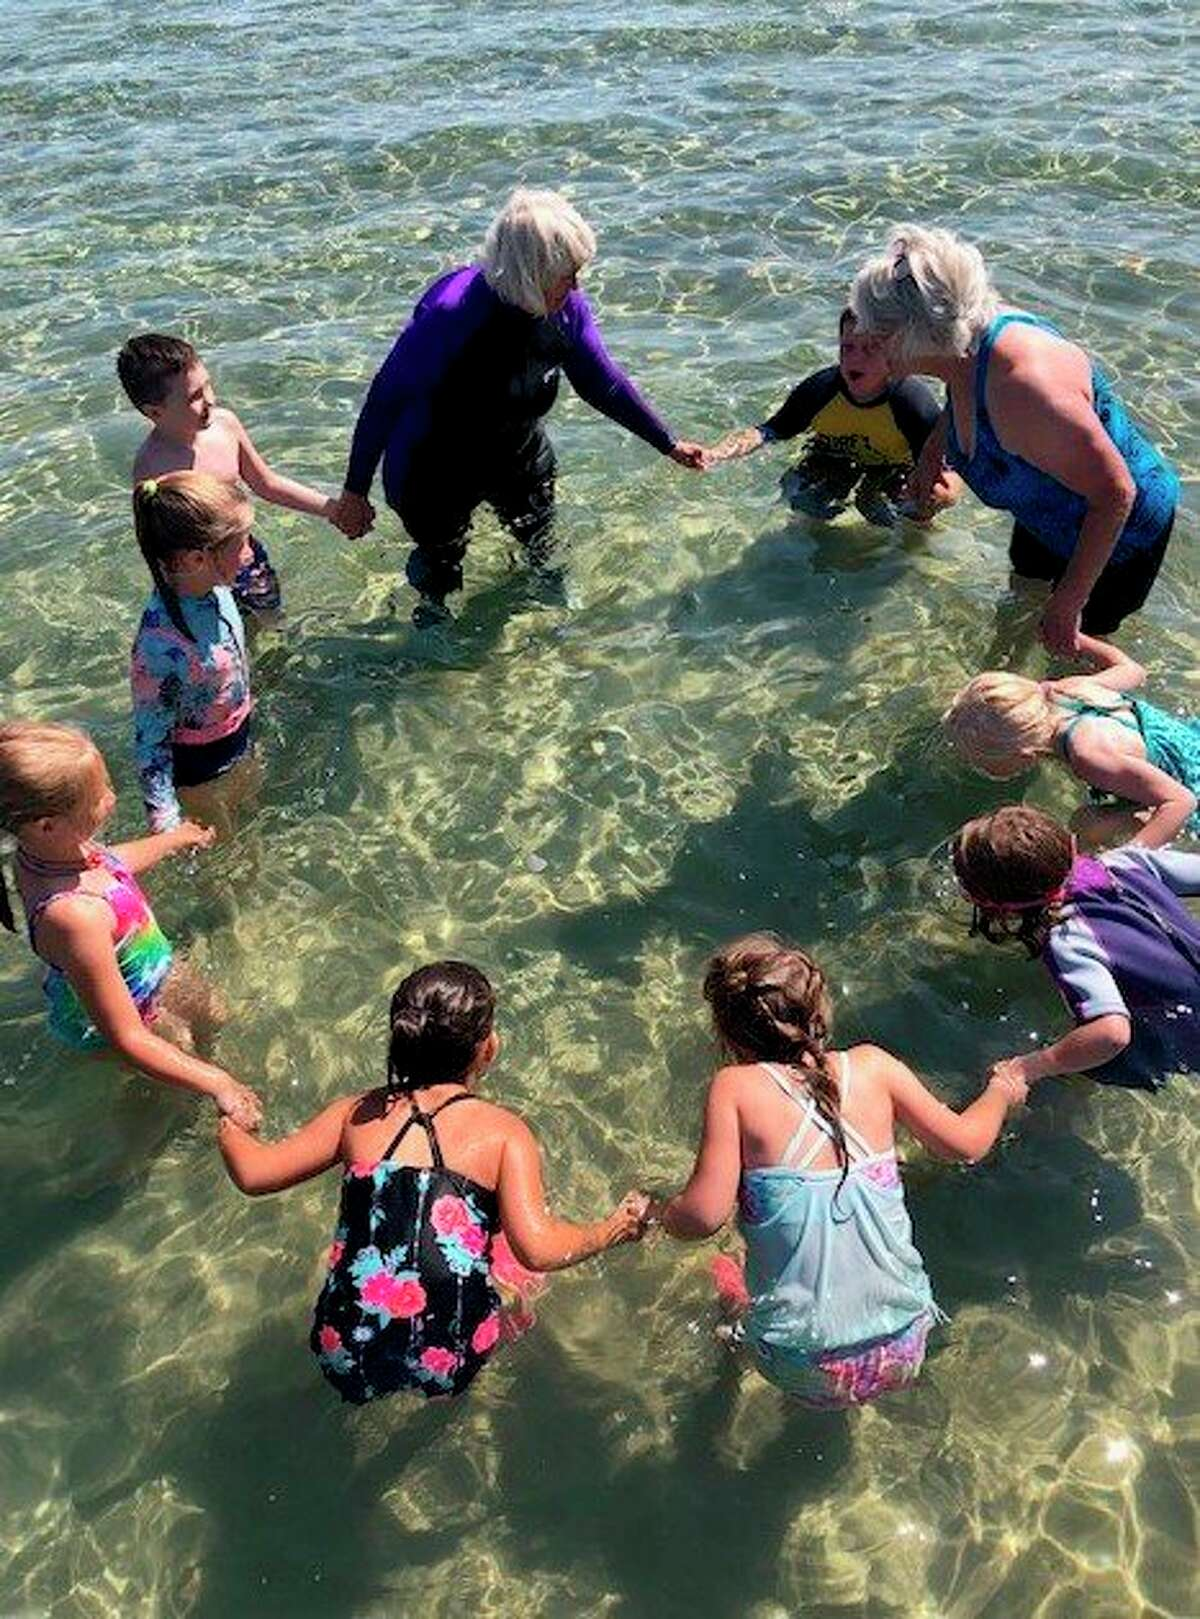 The Benzie Aquatic Center, which recently wrapped up a water safety pilot program for Benzie County's children, is one of 200 finalists in a nationwide popular vote contest for a $25,000 grant. (Courtesy Photo)